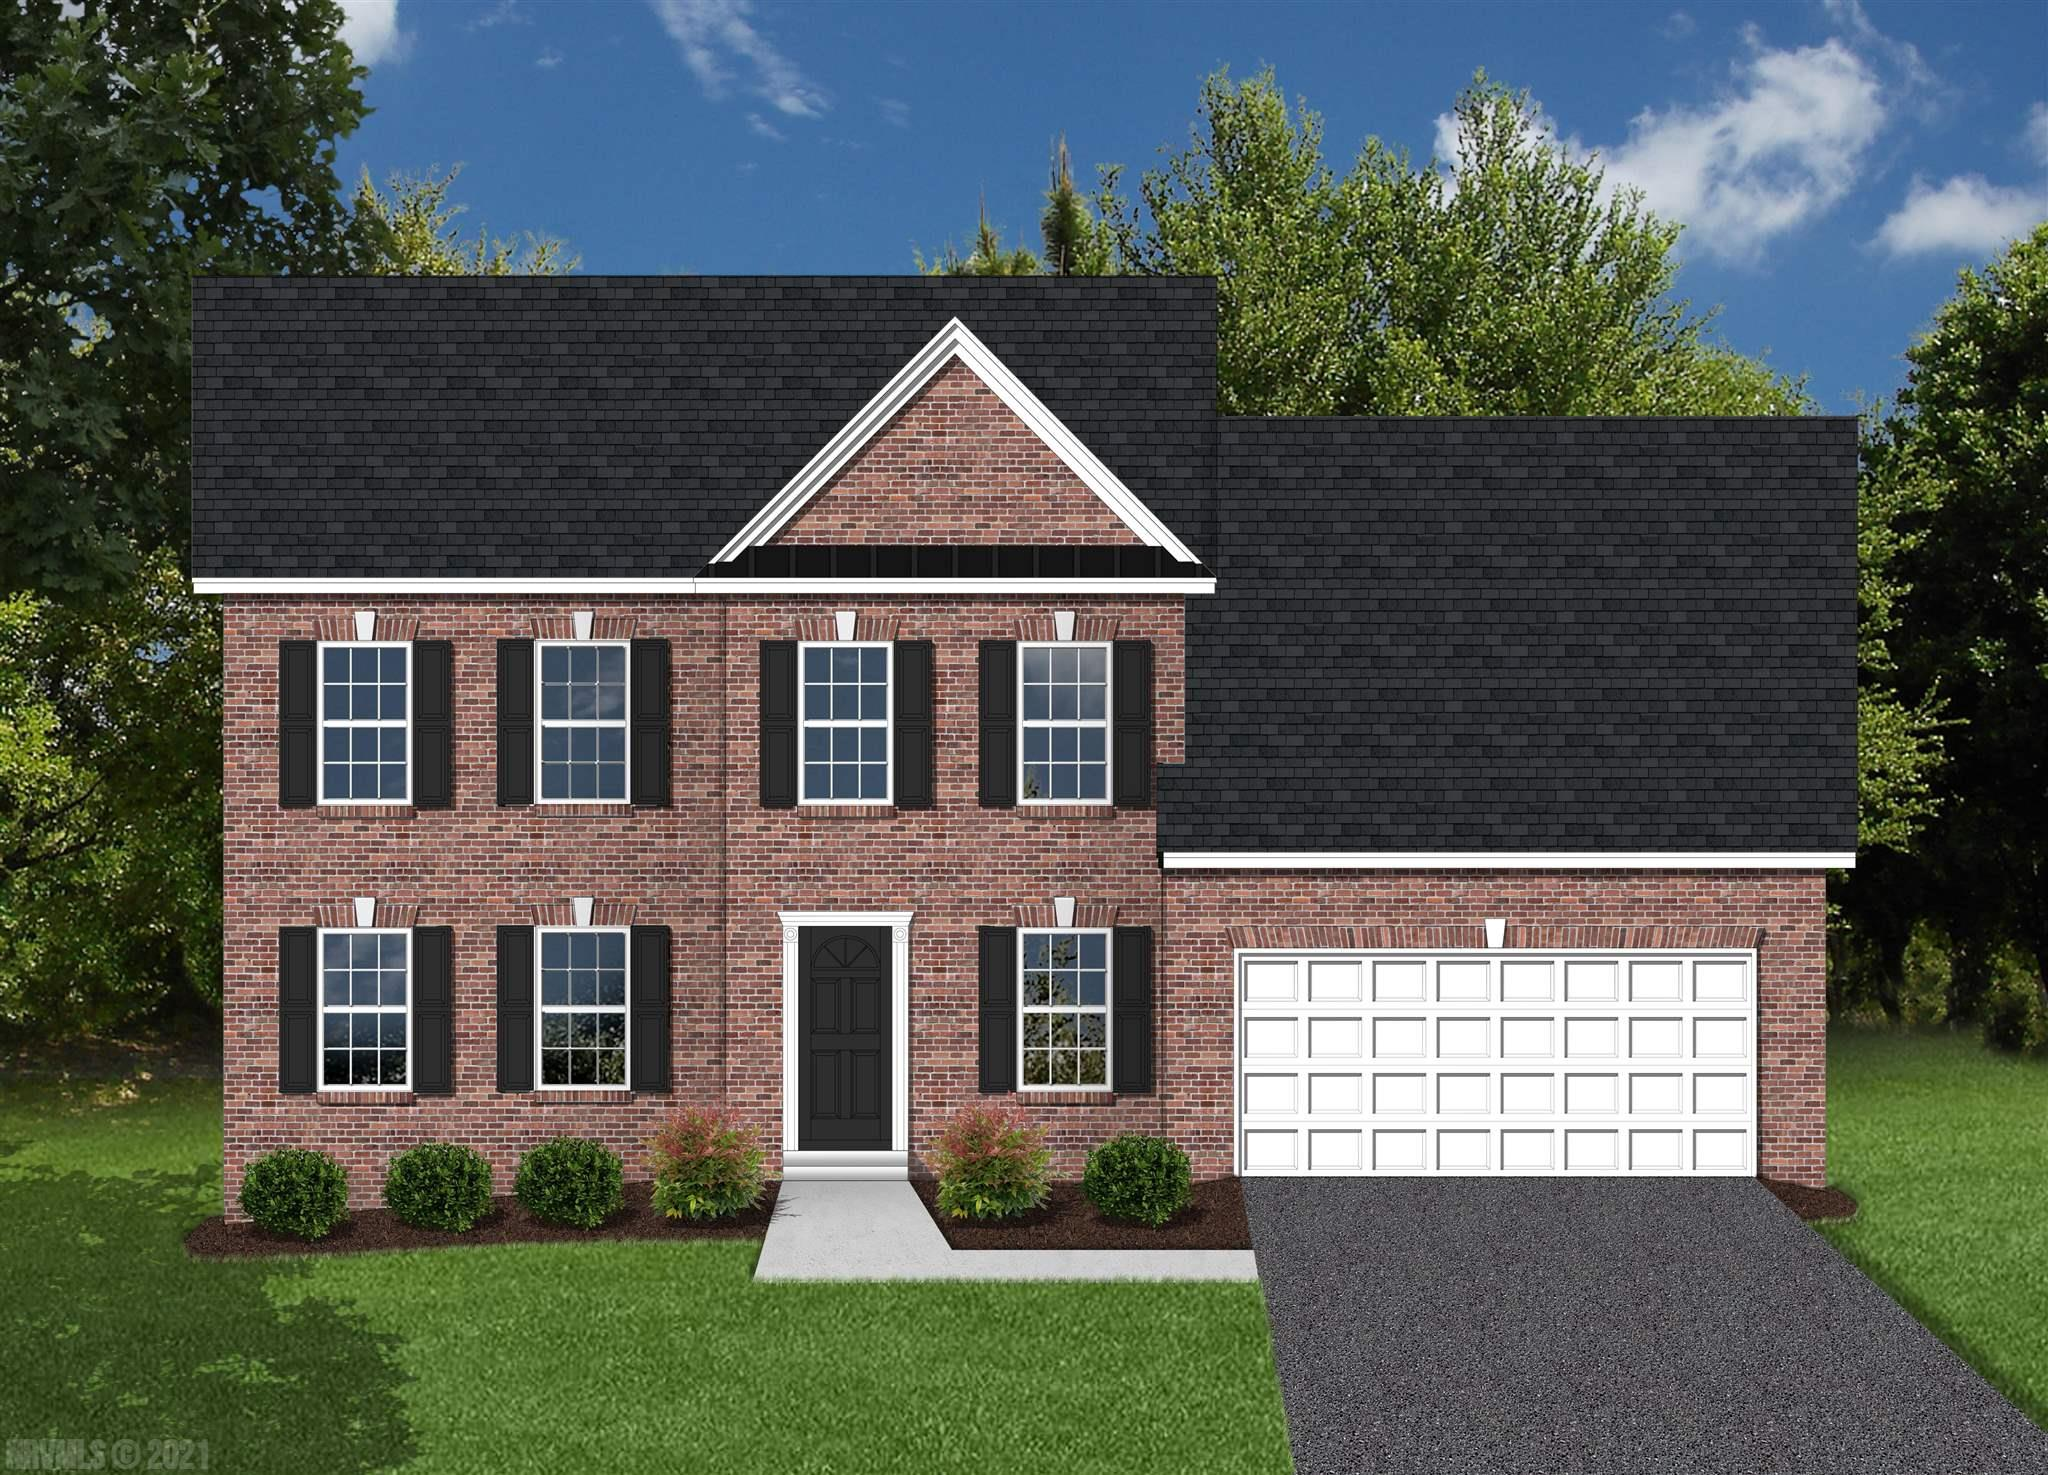 This is a pre-construction, Proposed listing that is not yet built. Our Williamsburg Option 3 style home offers 2,131 square feet above grade, and 9' framed walls on first floor with smooth drywall finish. This house plan incorporates hardwoods in the foyer, dining, kitchen and half bath, ceramic tile in the baths and laundry, and carpet throughout remaining areas. Oak treads to the second floor where applicable. The master shower offers ceramic tiled walls! Premium Tahoe cabinets by Timberlake in the kitchen make the home even more beautiful. The kitchen counter tops are luxurious granite and the bathrooms are cultured marble. Crown molding can be found in the dining room and master bedroom, as well as chair rail with wainscoting in the dining room. The exterior finishes consist of double-hung windows, brick, siding, and architectural shingles. Kensington is conveniently located in Christiansburg off Mud Pike Road and is adjacent the Christiansburg Middle School.